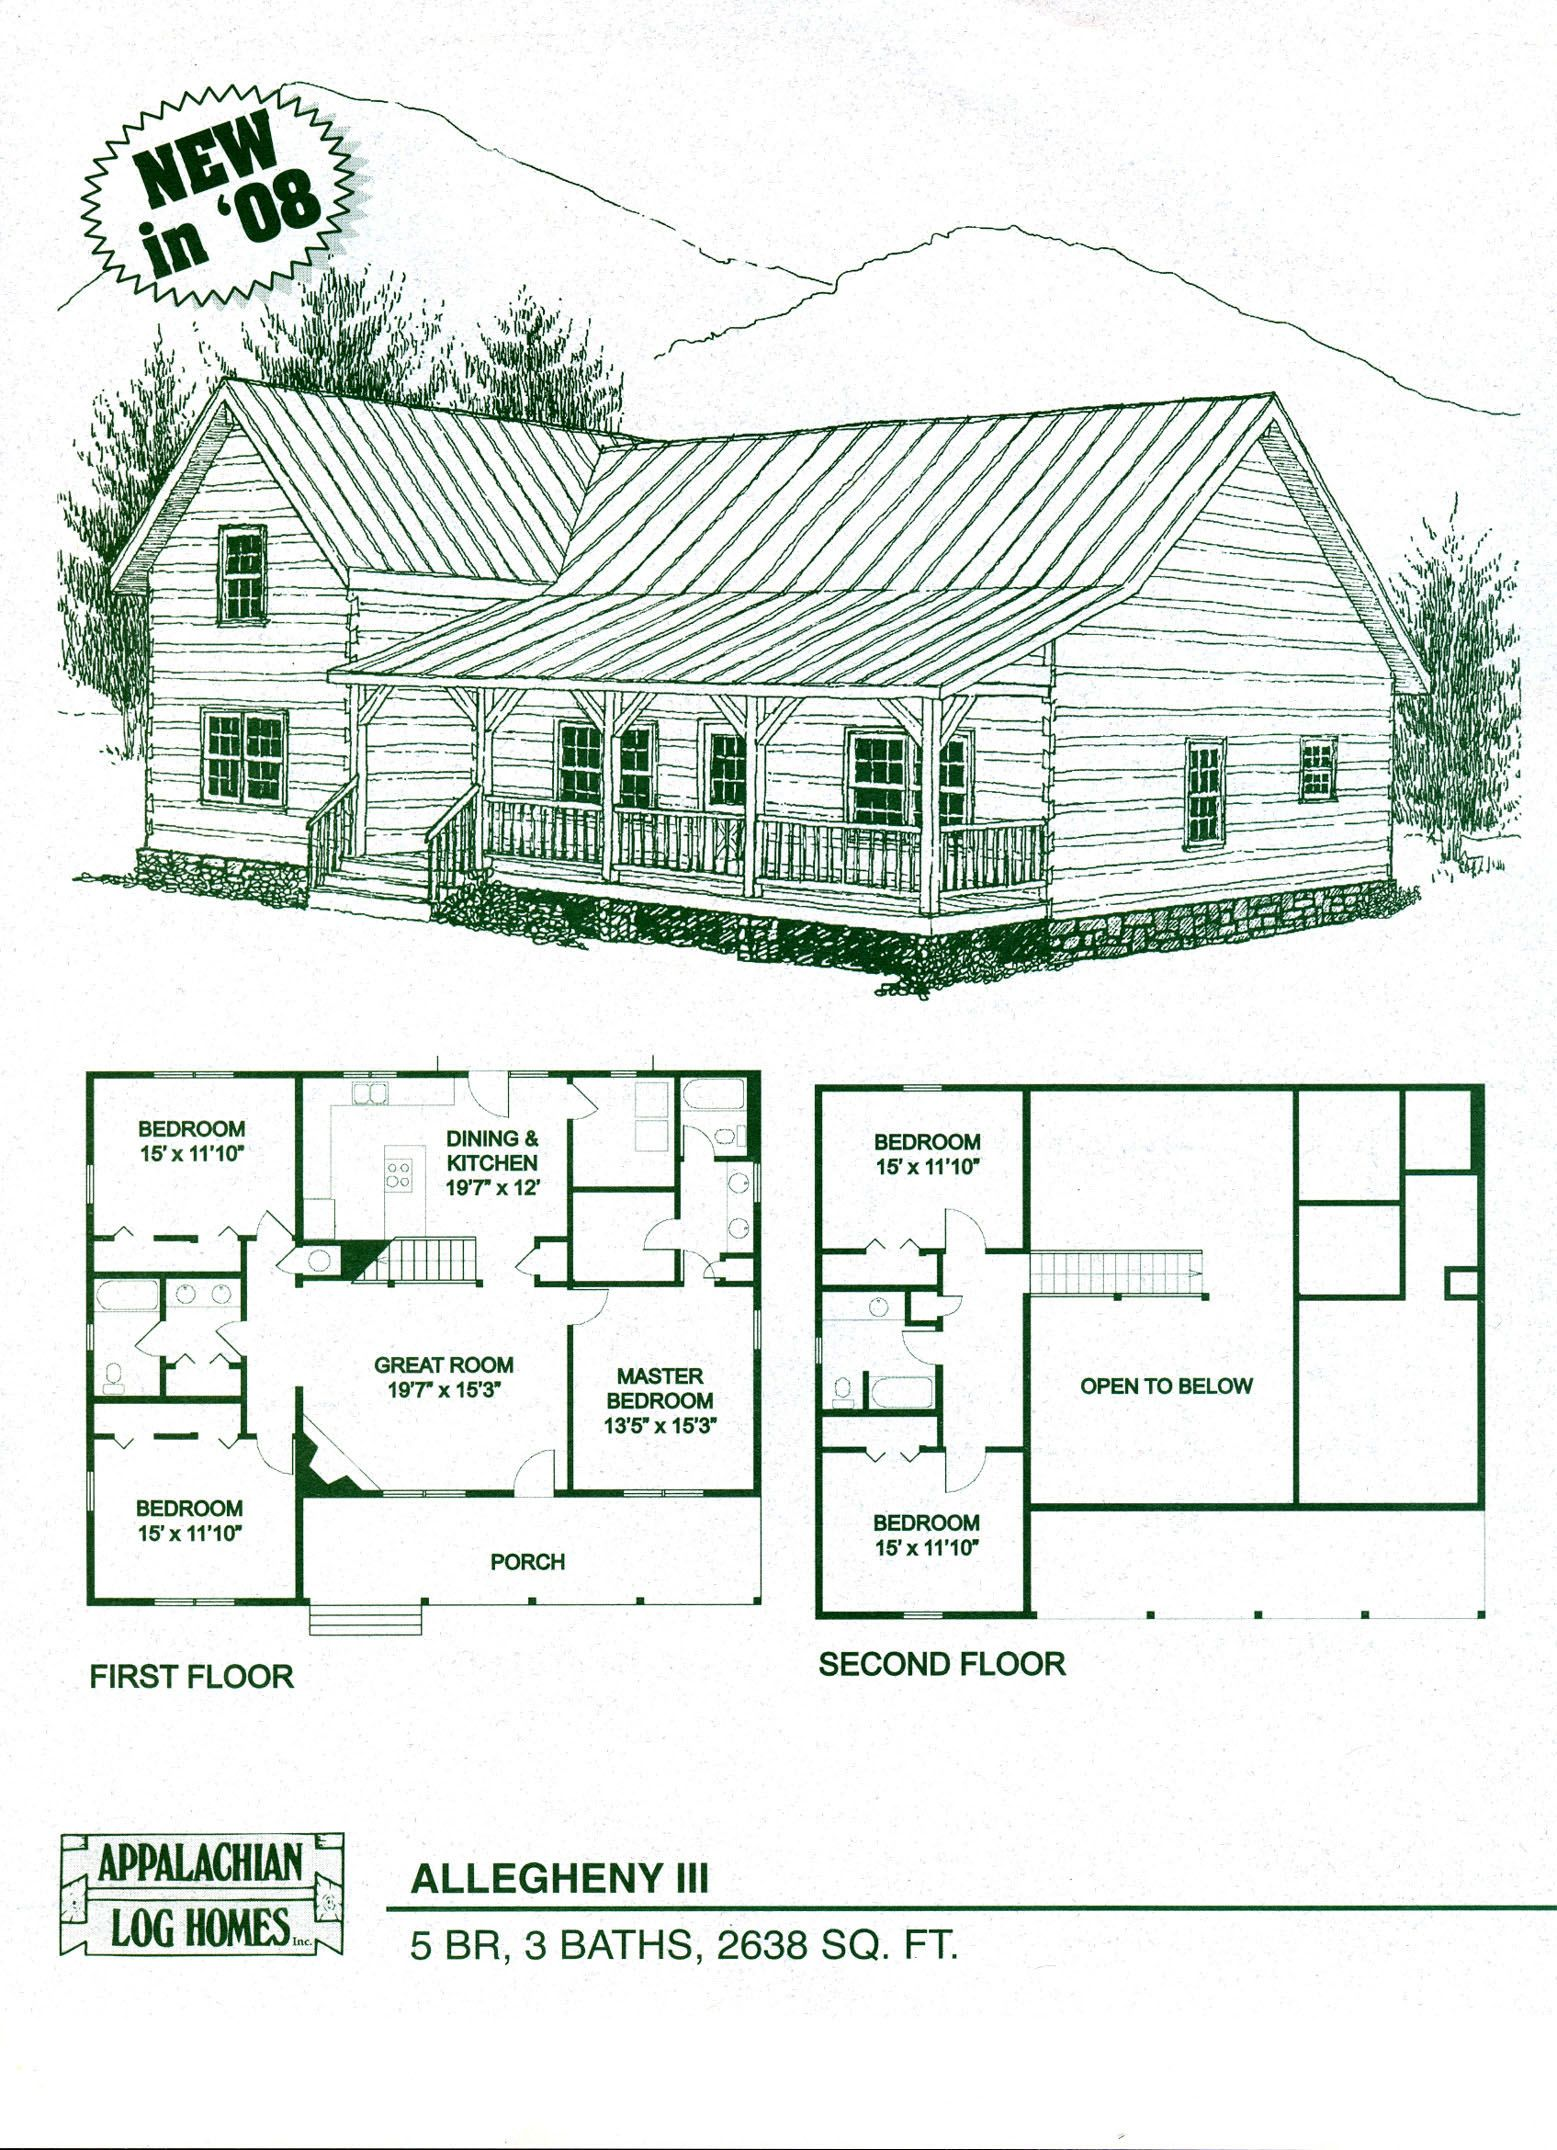 Log home floor plans log cabin kits appalachian log for 5 bedroom log home floor plans